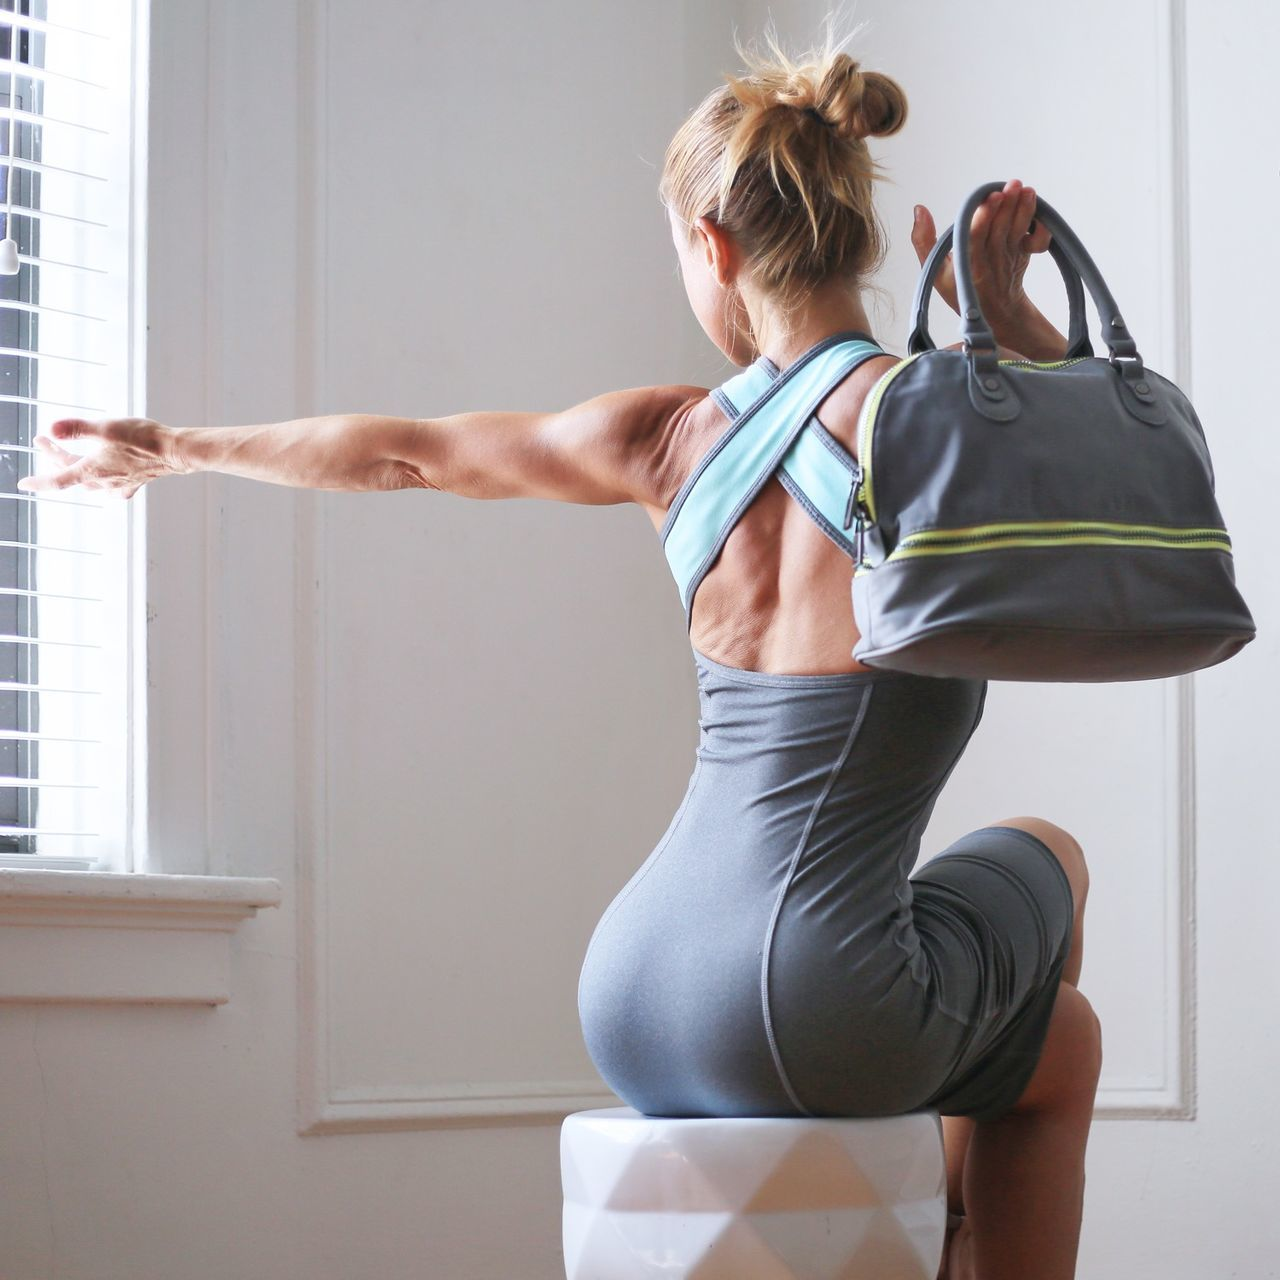 Rear view of athlete woman stretching while holding shoulder bag at home